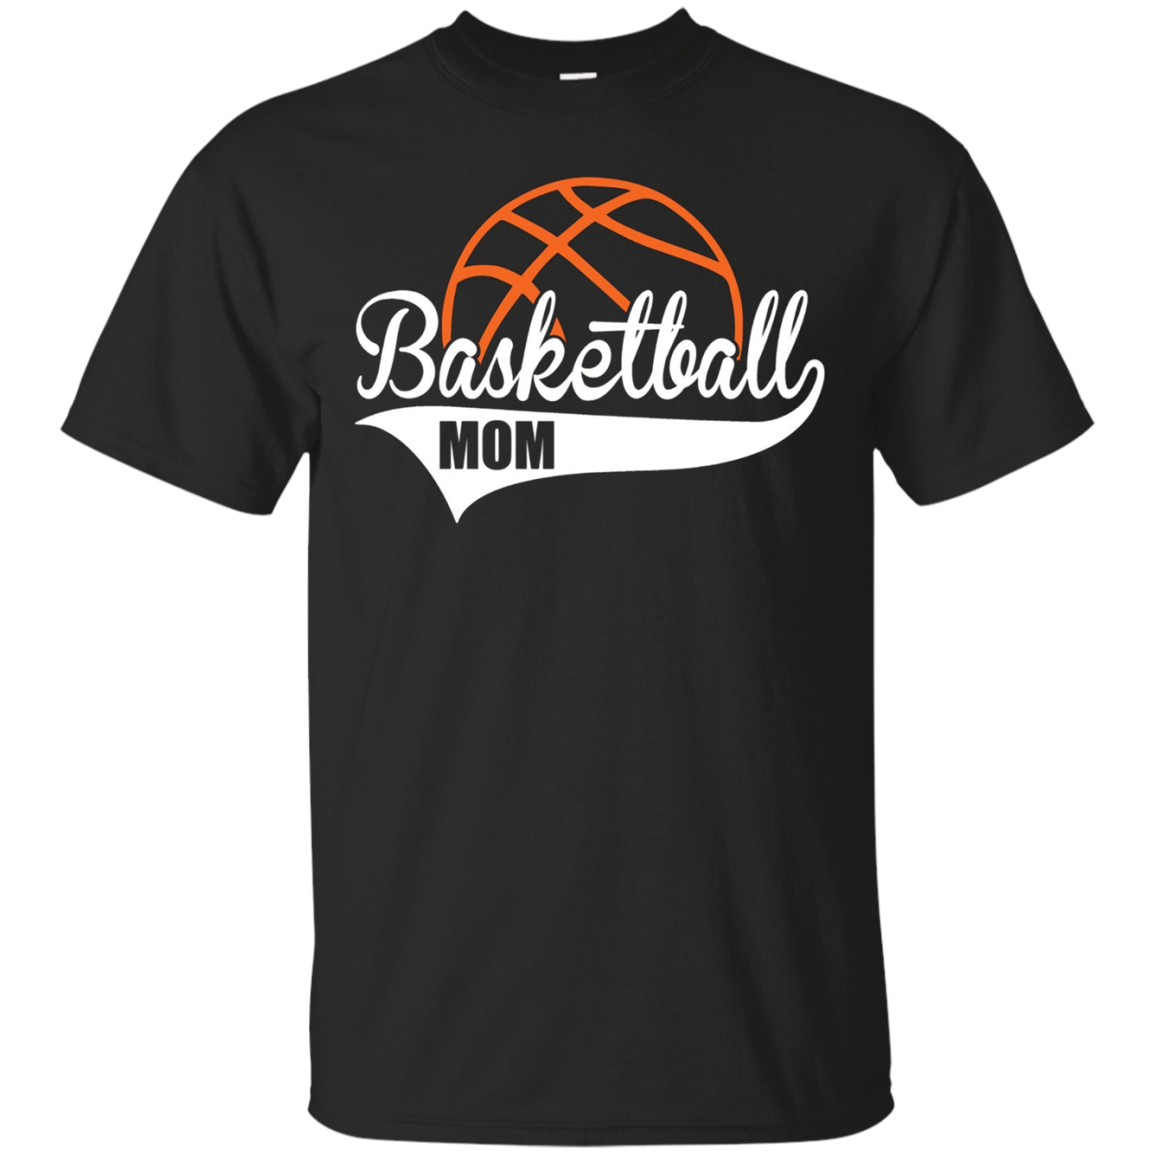 Basketball Mom T-Shirt Matching Family Basketball